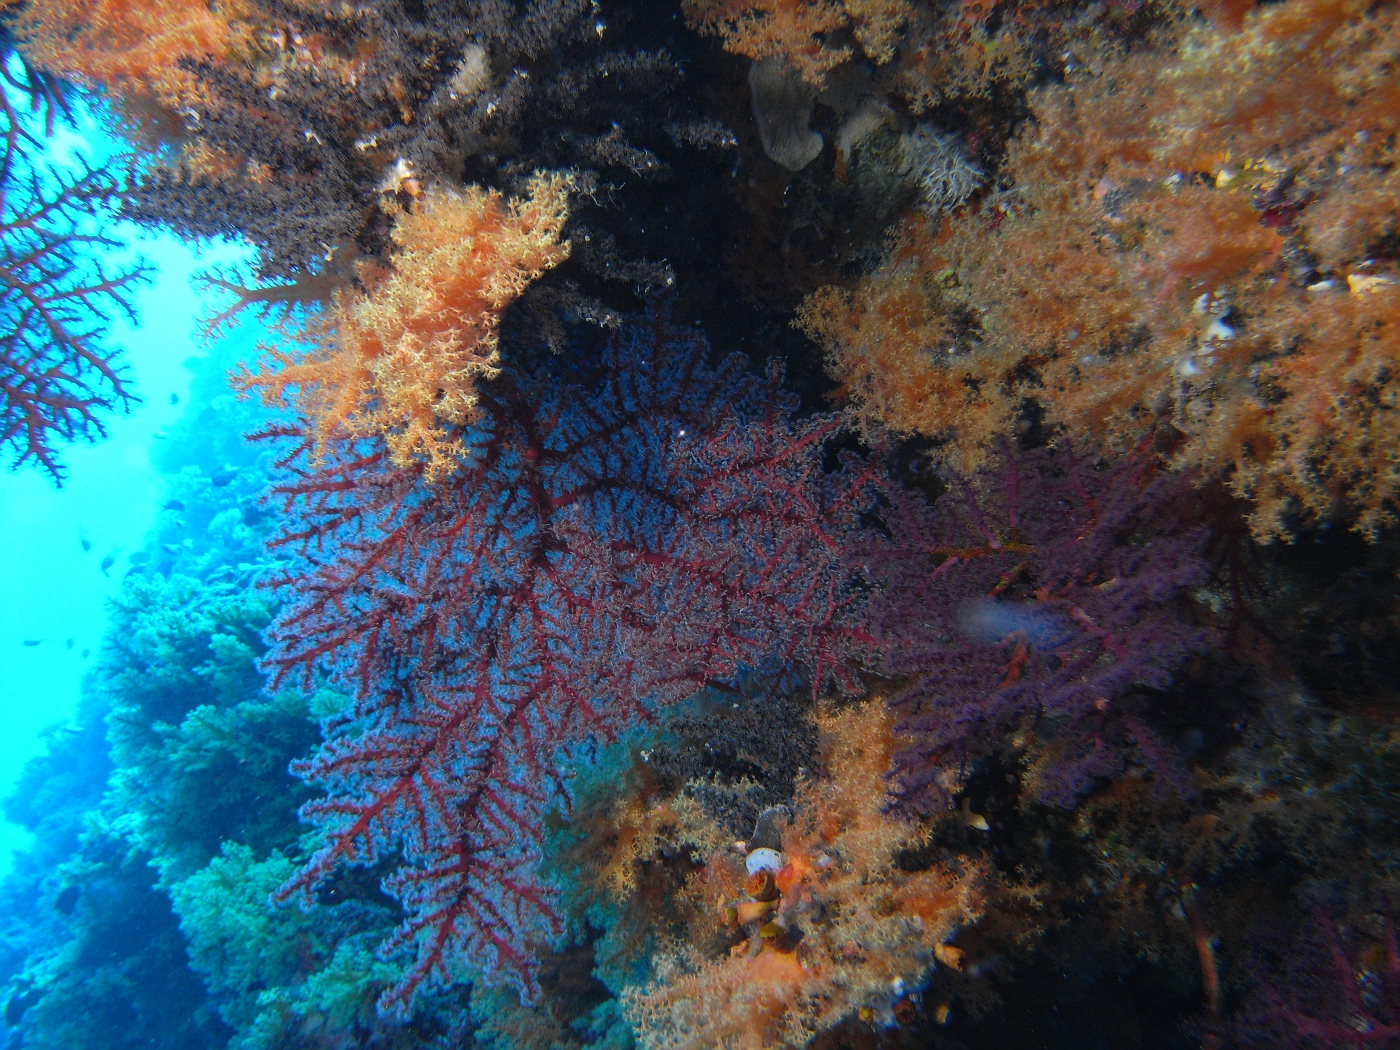 Soft Coral in Cave